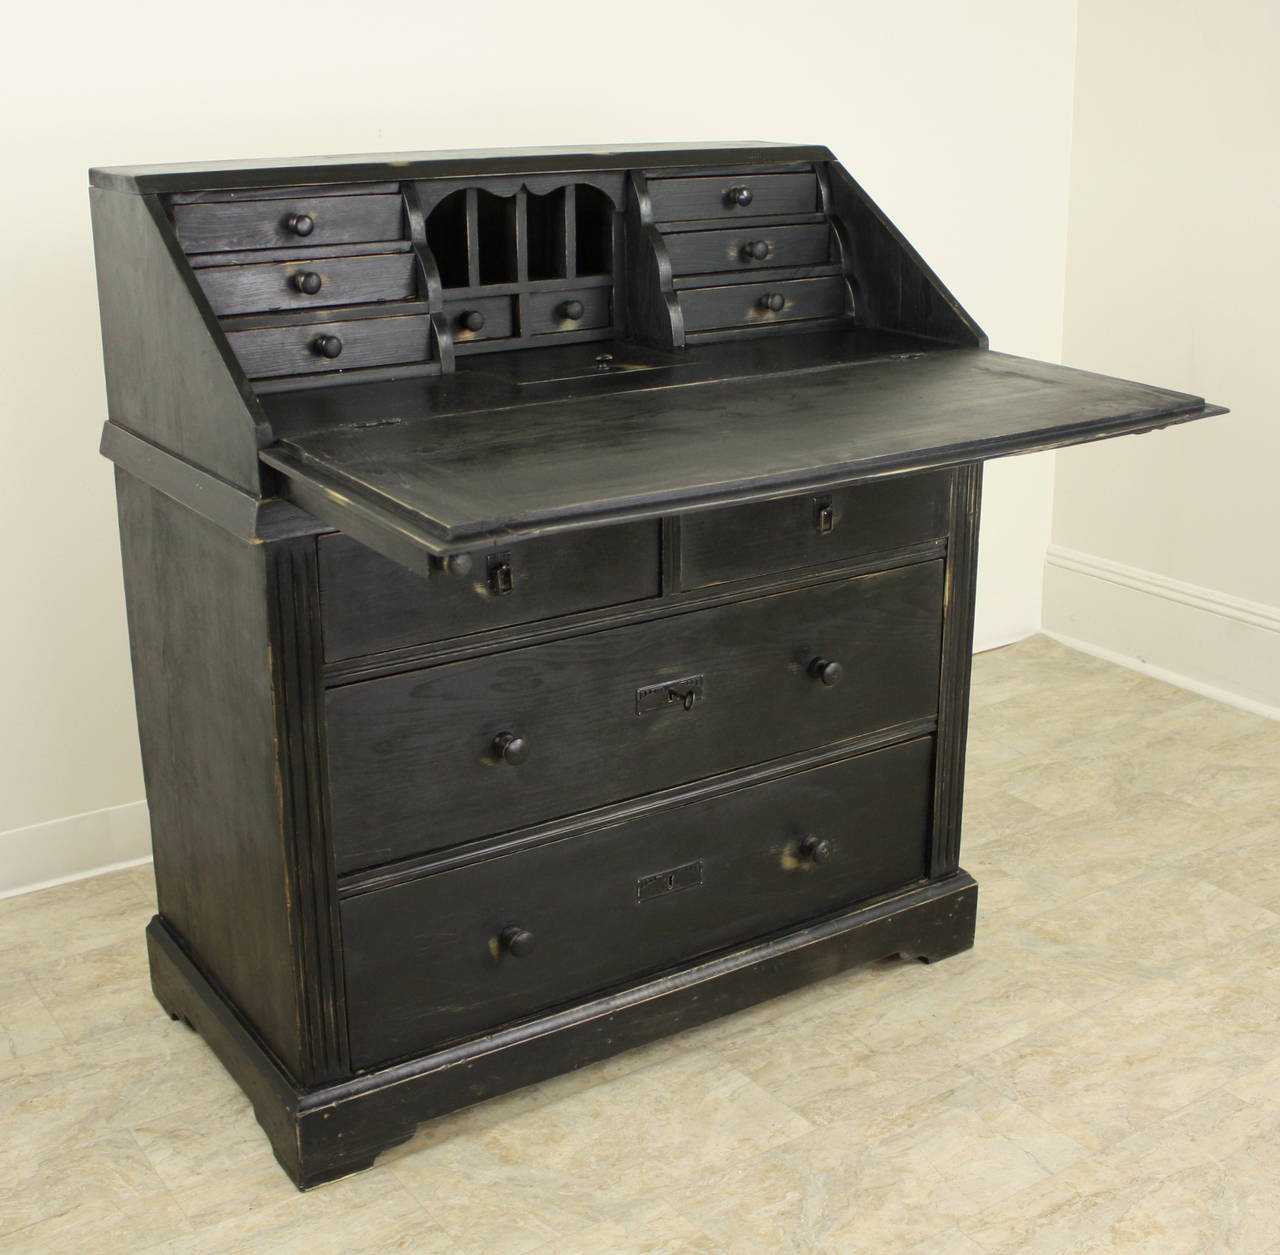 Antique Continental Black Slant Top Desk At 1stdibs